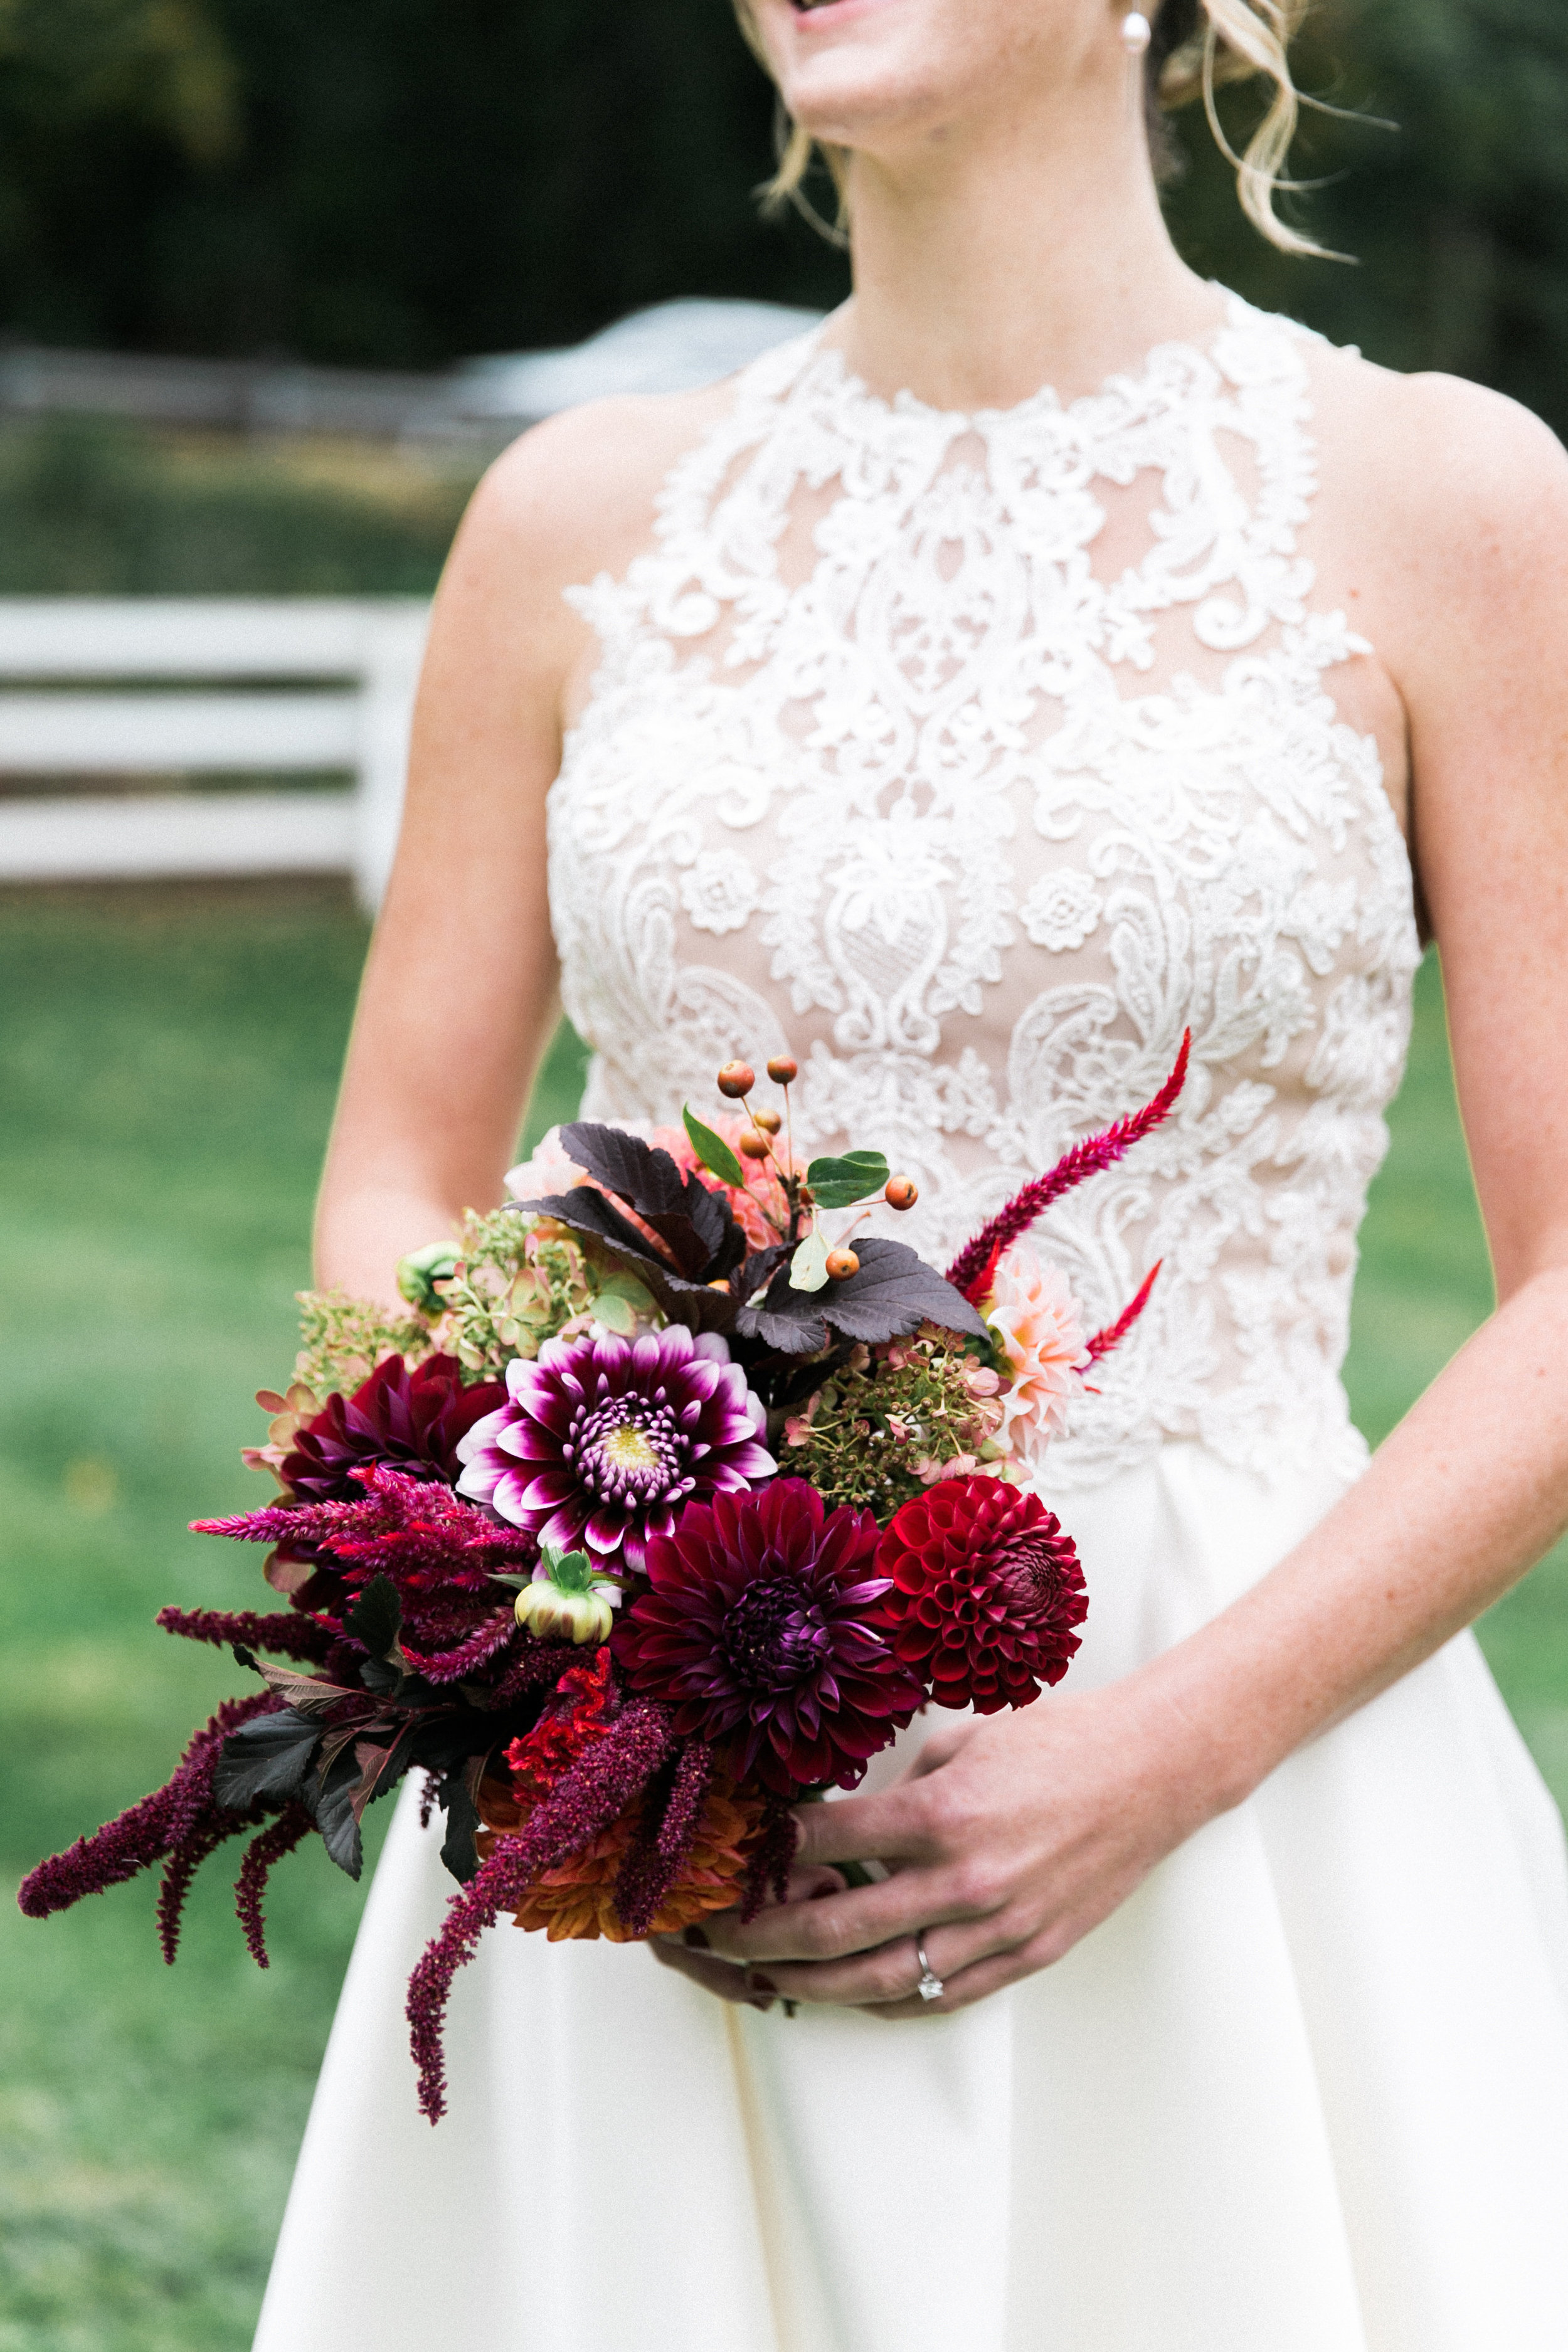 Taryn and Sharon were married on the family farm in Avon, Connecticut. Photo by Brigham and Co Photography.